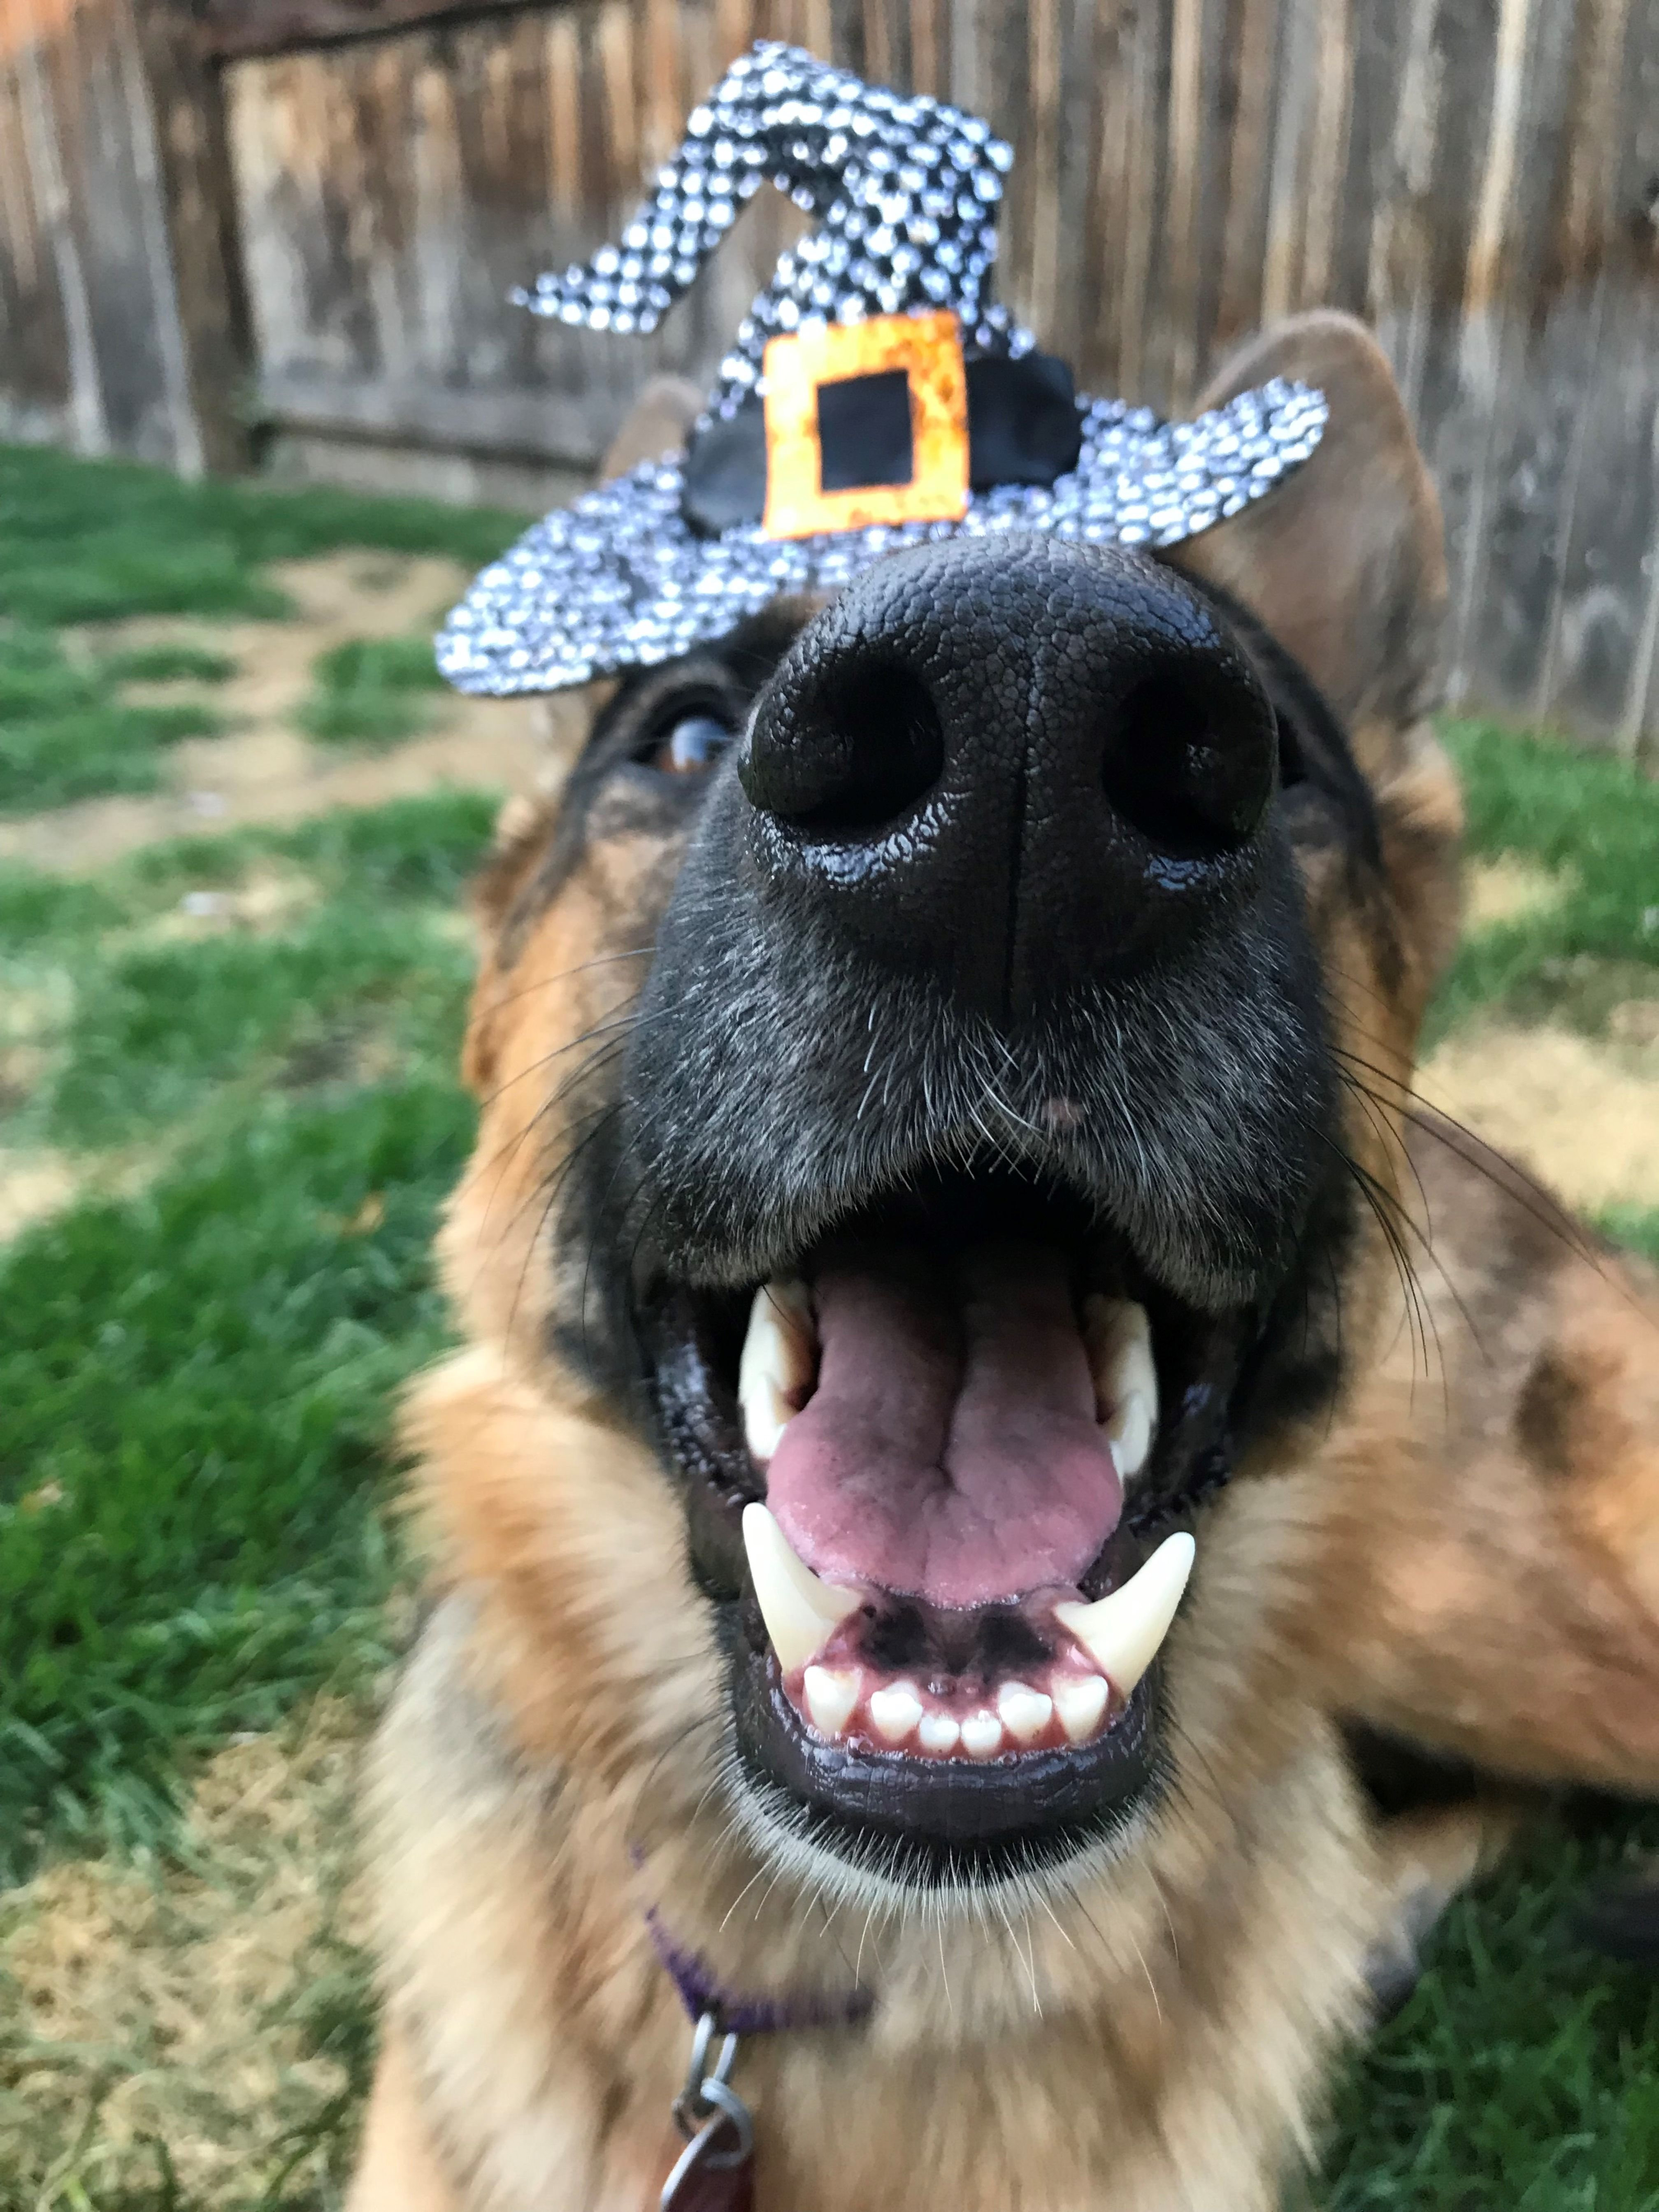 Simple Safety Tips To Keep Your Pets Happy And Safe This Halloween